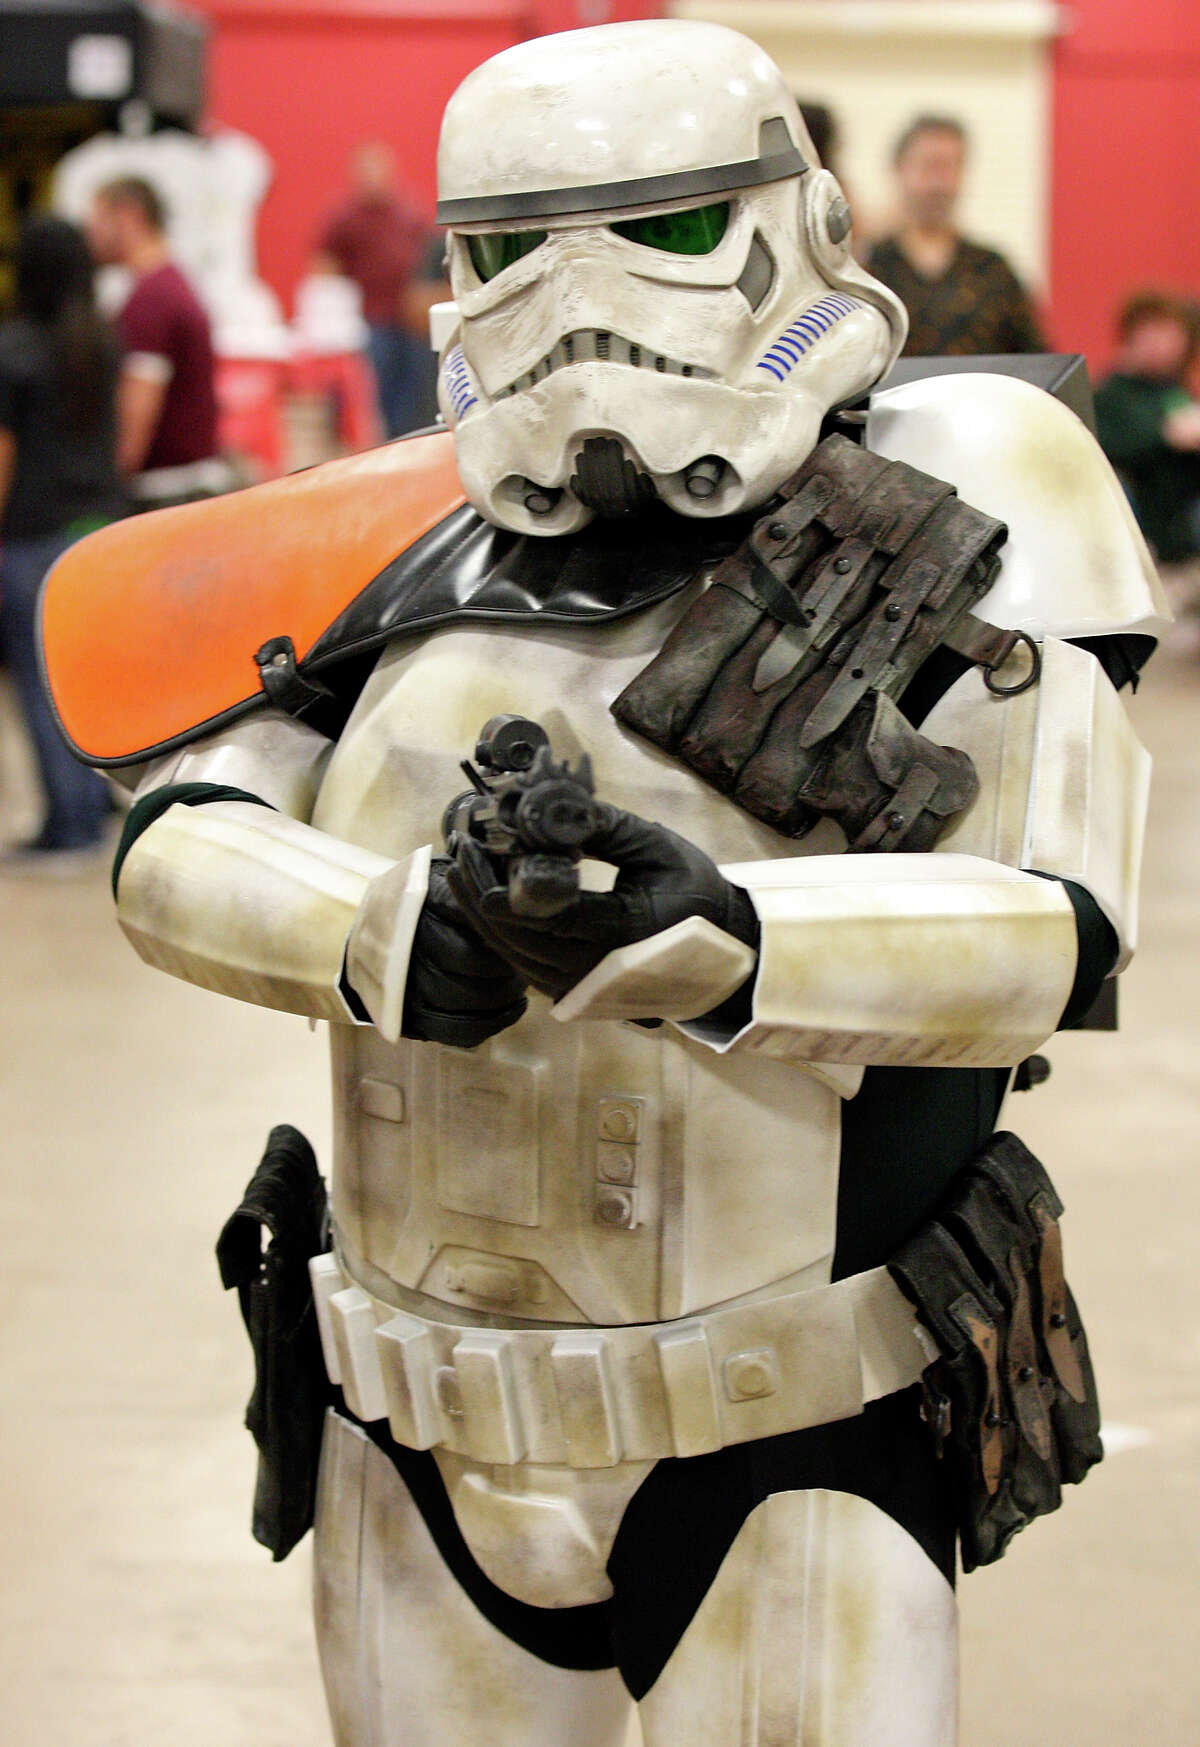 FOR METRO - John Laurel, 40, as a Sandtrooper, poses for a photo during the Texas Comicon 2011 Sunday June 26, 2011 at the San Antonio Event Center. (PHOTO BY EDWARD A. ORNELAS/eaornelas@express-news.net)